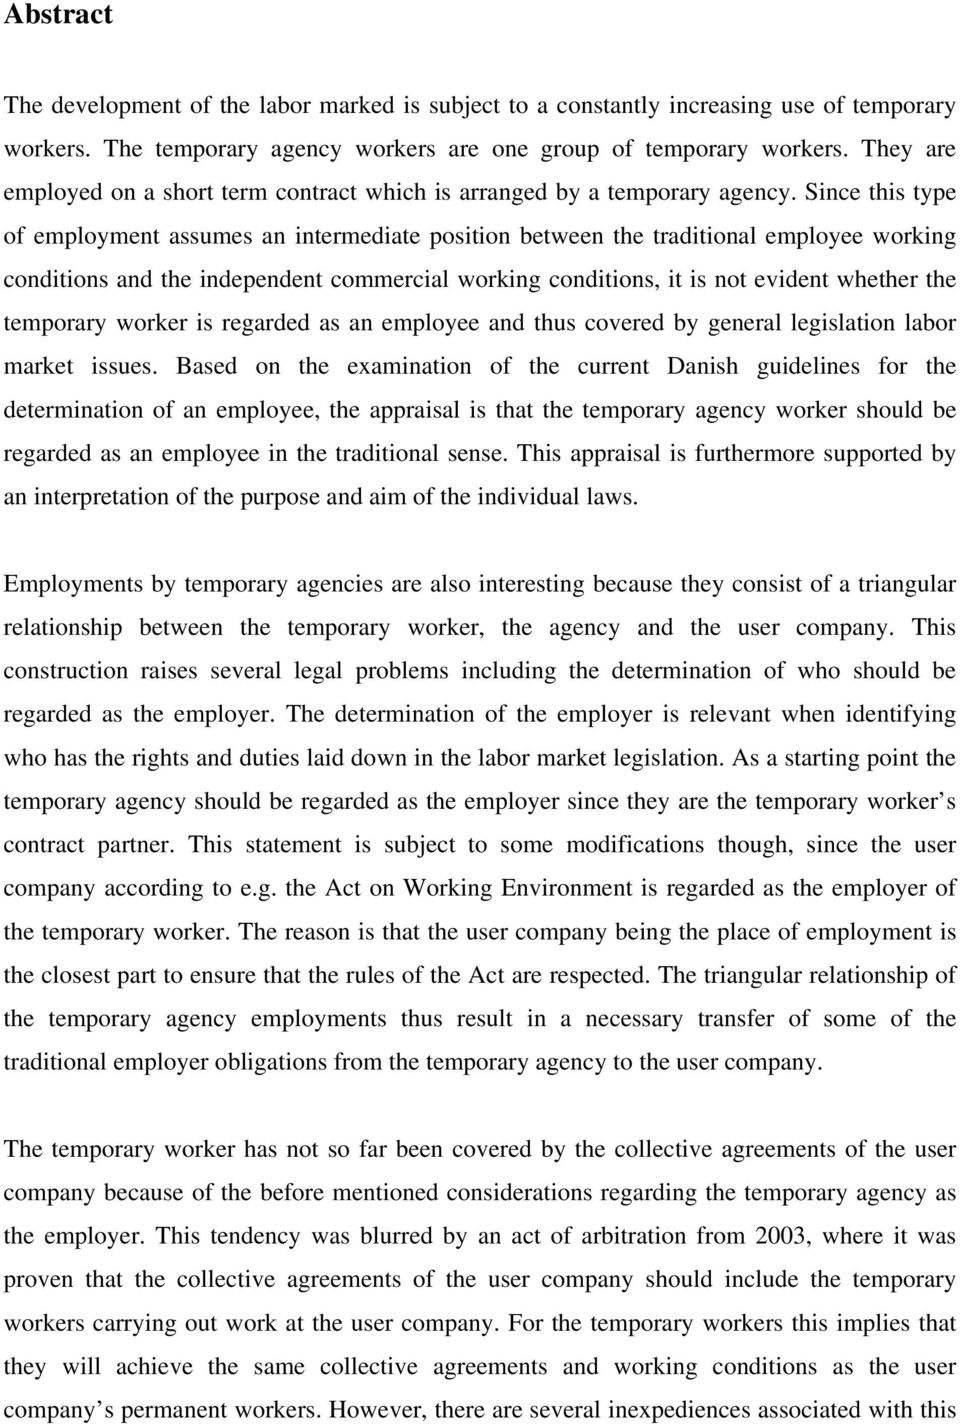 Since this type of employment assumes an intermediate position between the traditional employee working conditions and the independent commercial working conditions, it is not evident whether the